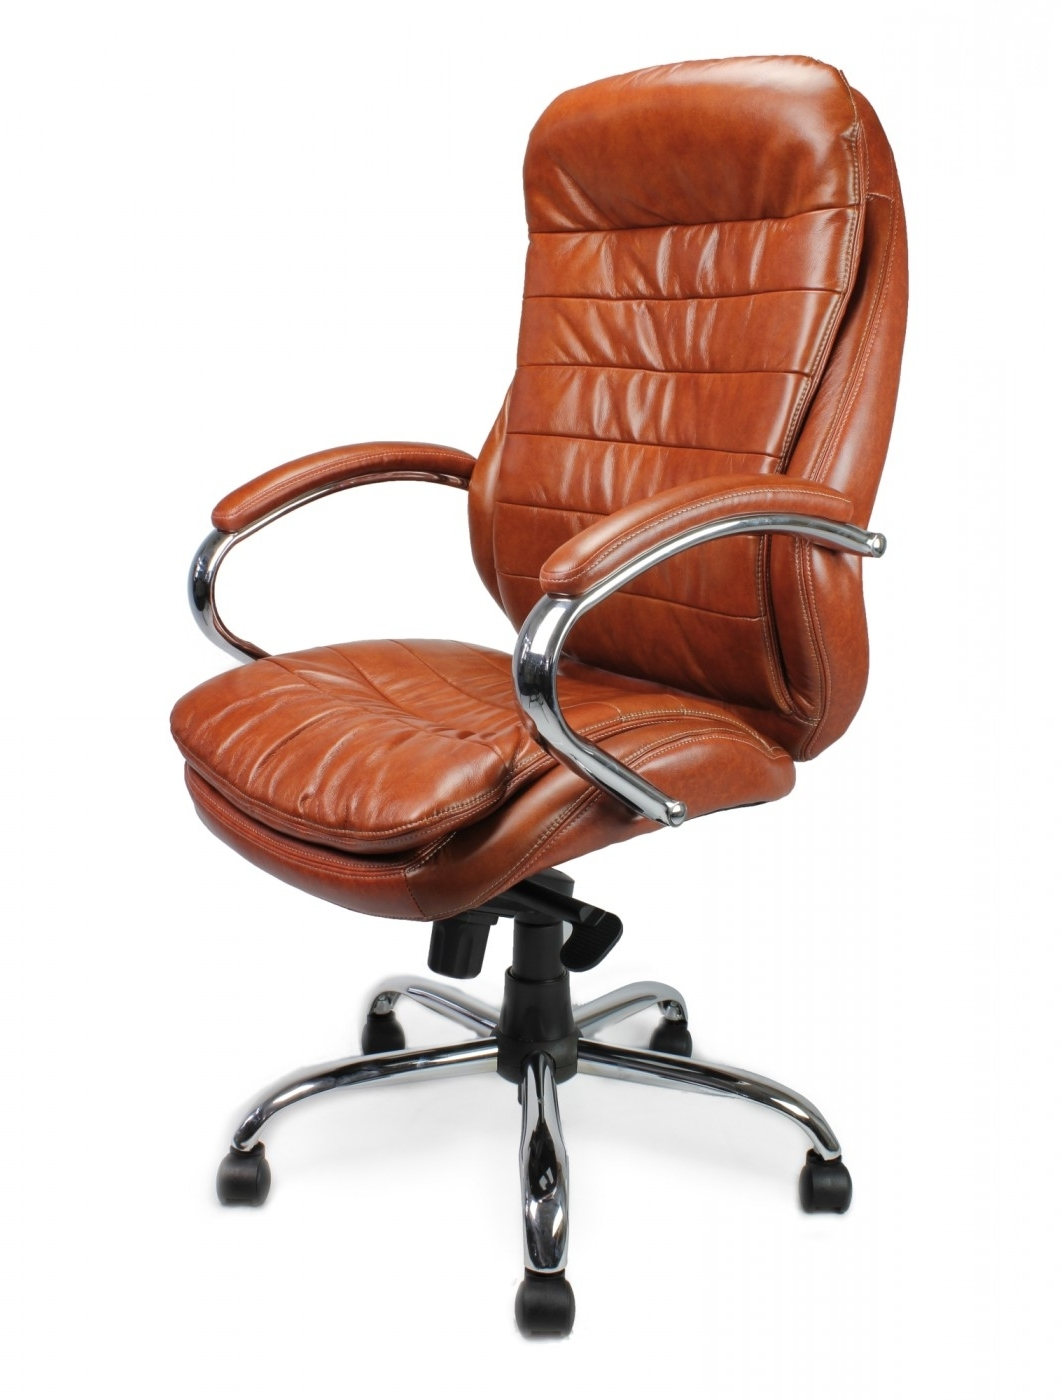 Chair : Transitional Leather Executive Office Chair Leather Inside Latest Genuine Leather Executive Office Chairs (View 2 of 20)